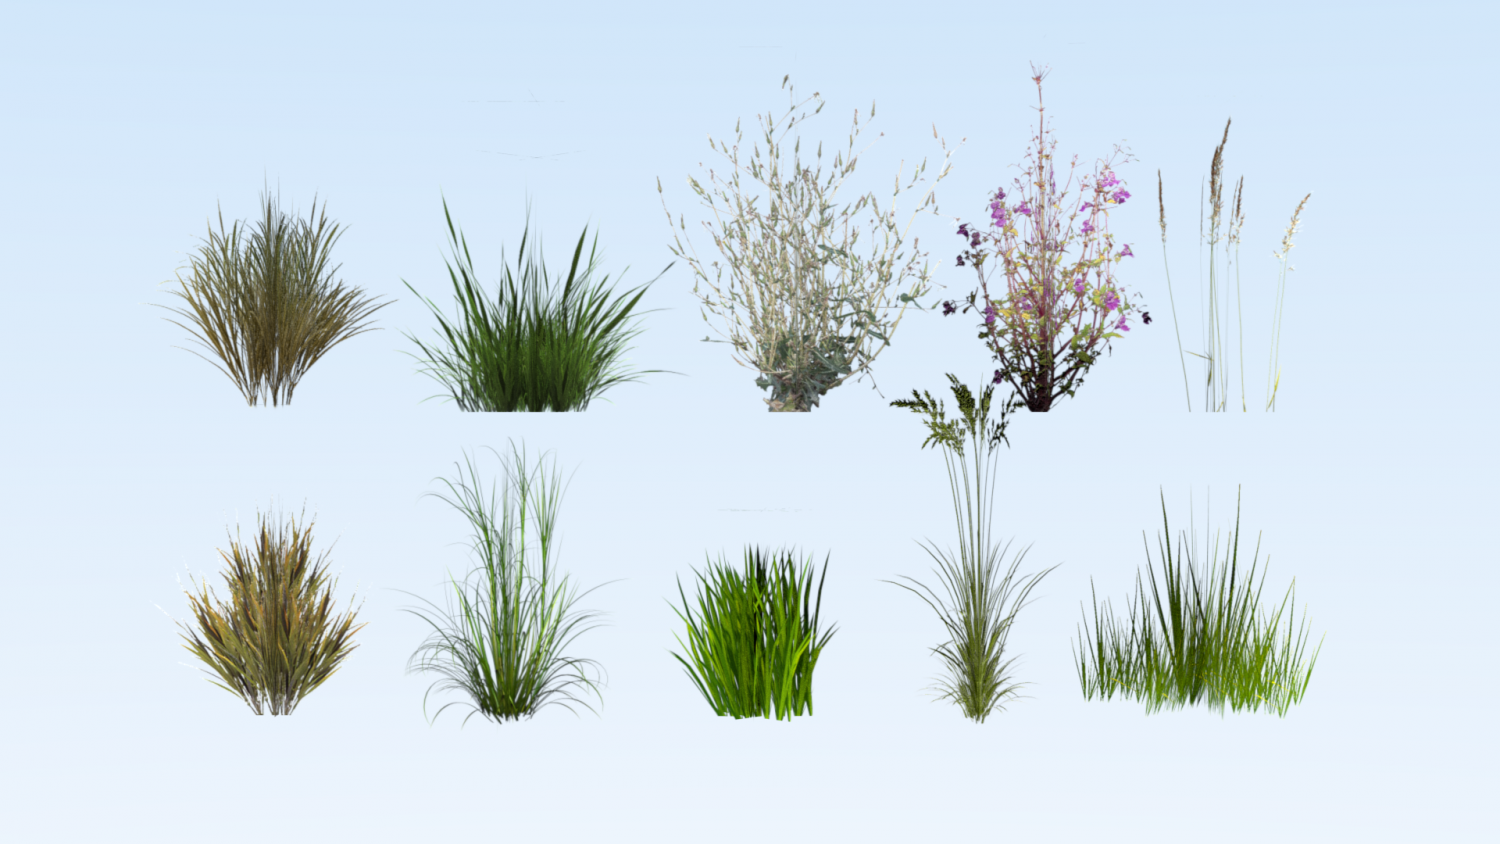 Lowpoly Grass Pack 3d Model In Grass And Ground Cover 3dexport